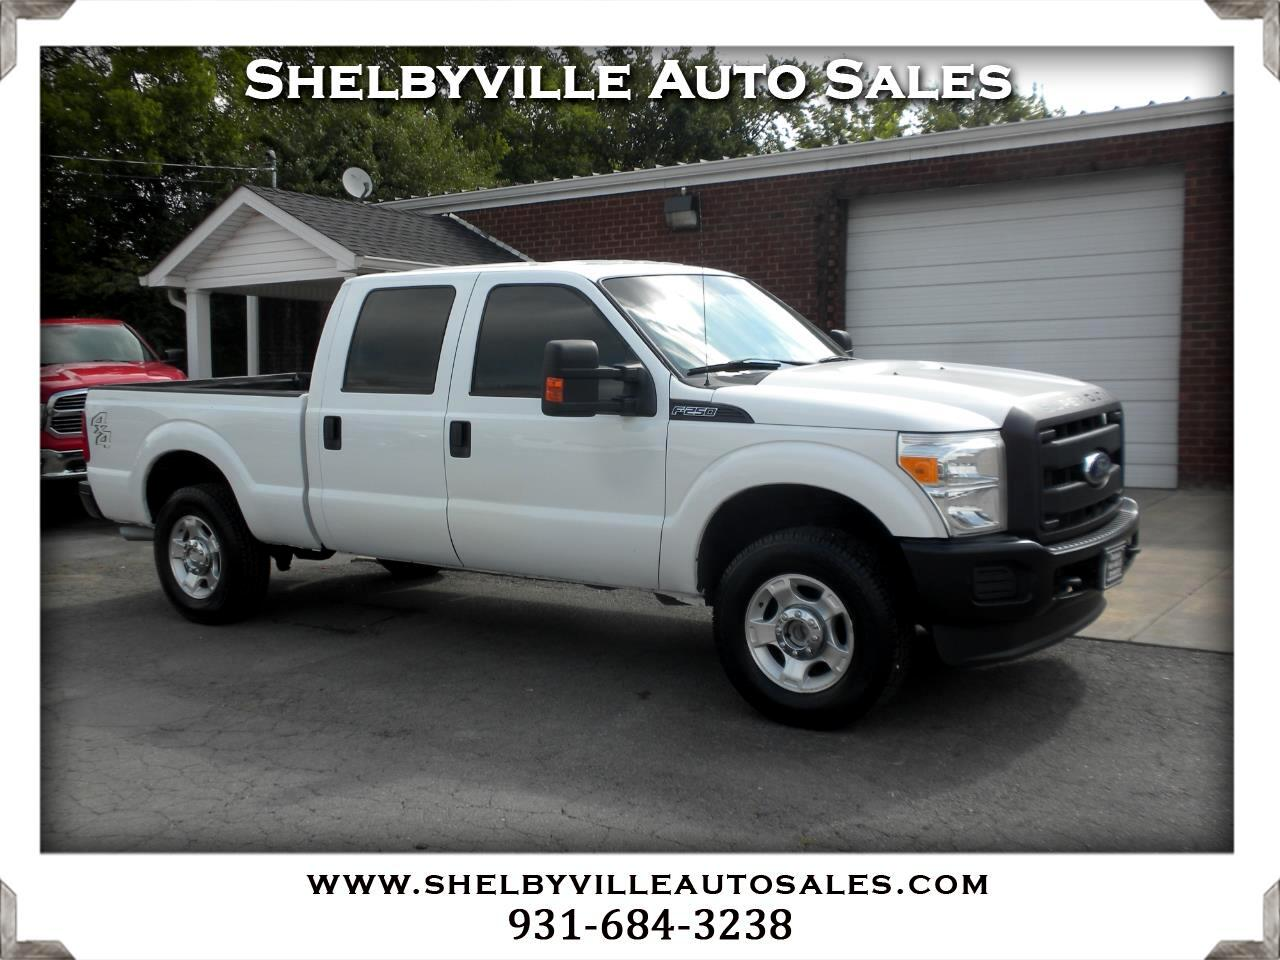 2014 Ford Super Duty F-250 SRW 4X4 Crew Cab XL